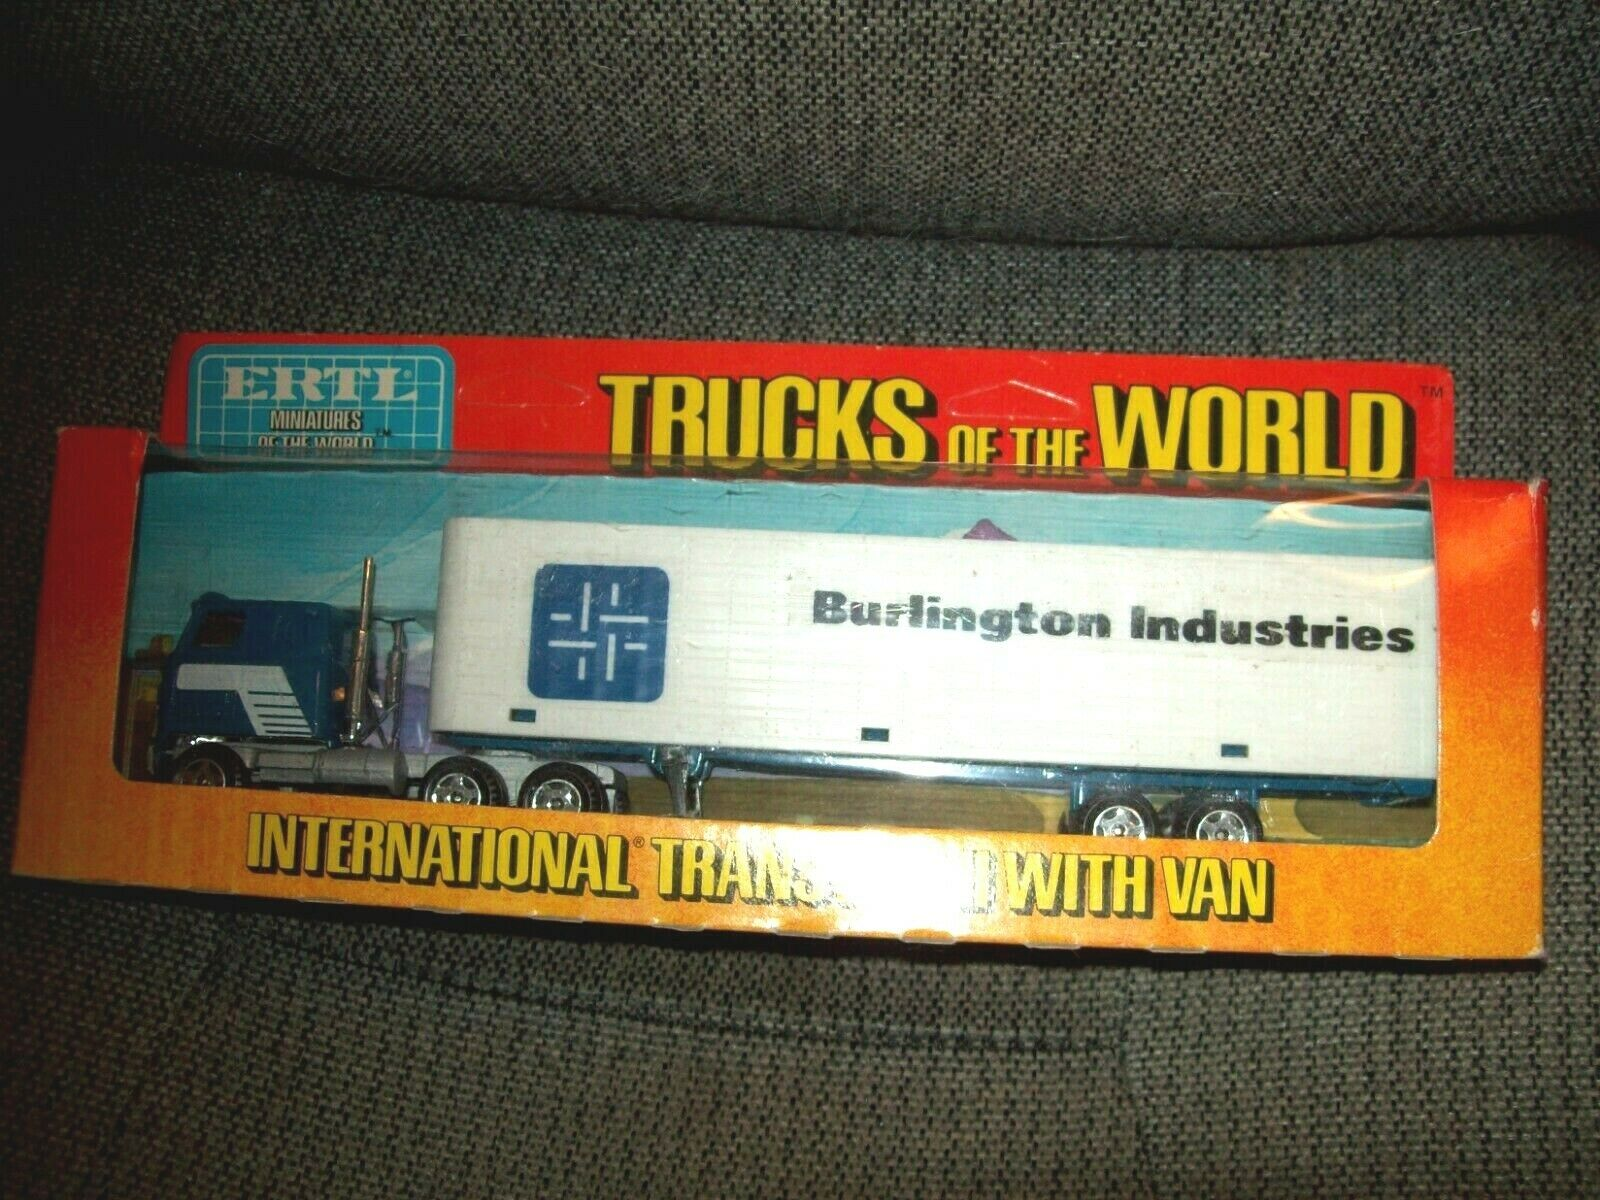 ERTL  1653 TRUCKS OF THE WORLD, INTERNATIONAL TRANSTAR TRK, BURLINGTON VAN, VGC